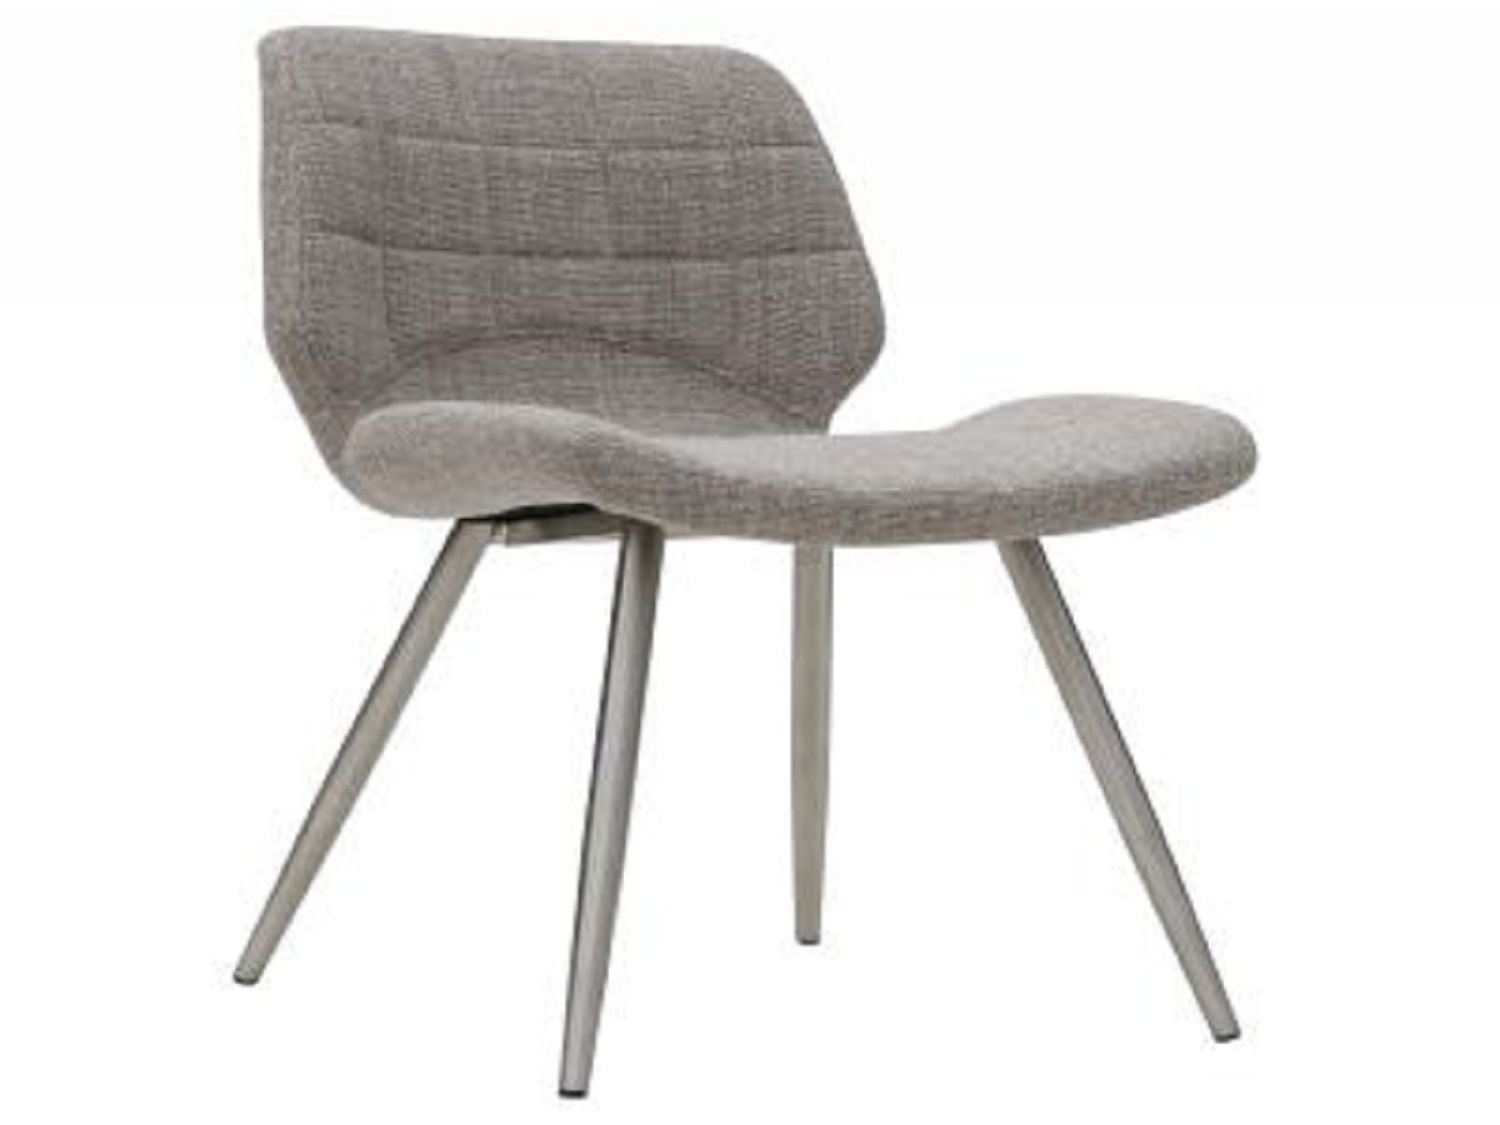 COOPER-SIDE CHAIR-BEIGE BLEND, 841173030964, Dining Chairs, COOPER-SIDE CHAIR-BEIGE BLEND from Dropship by Midha Furniture serving Brampton, Mississauga, Etobicoke, Toronto, Scraborough, Caledon, Cambridge, Oakville, Markham, Ajax, Pickering, Oshawa, Richmondhill, Kitchener, Hamilton, Cambridge, Waterloo and GTA area